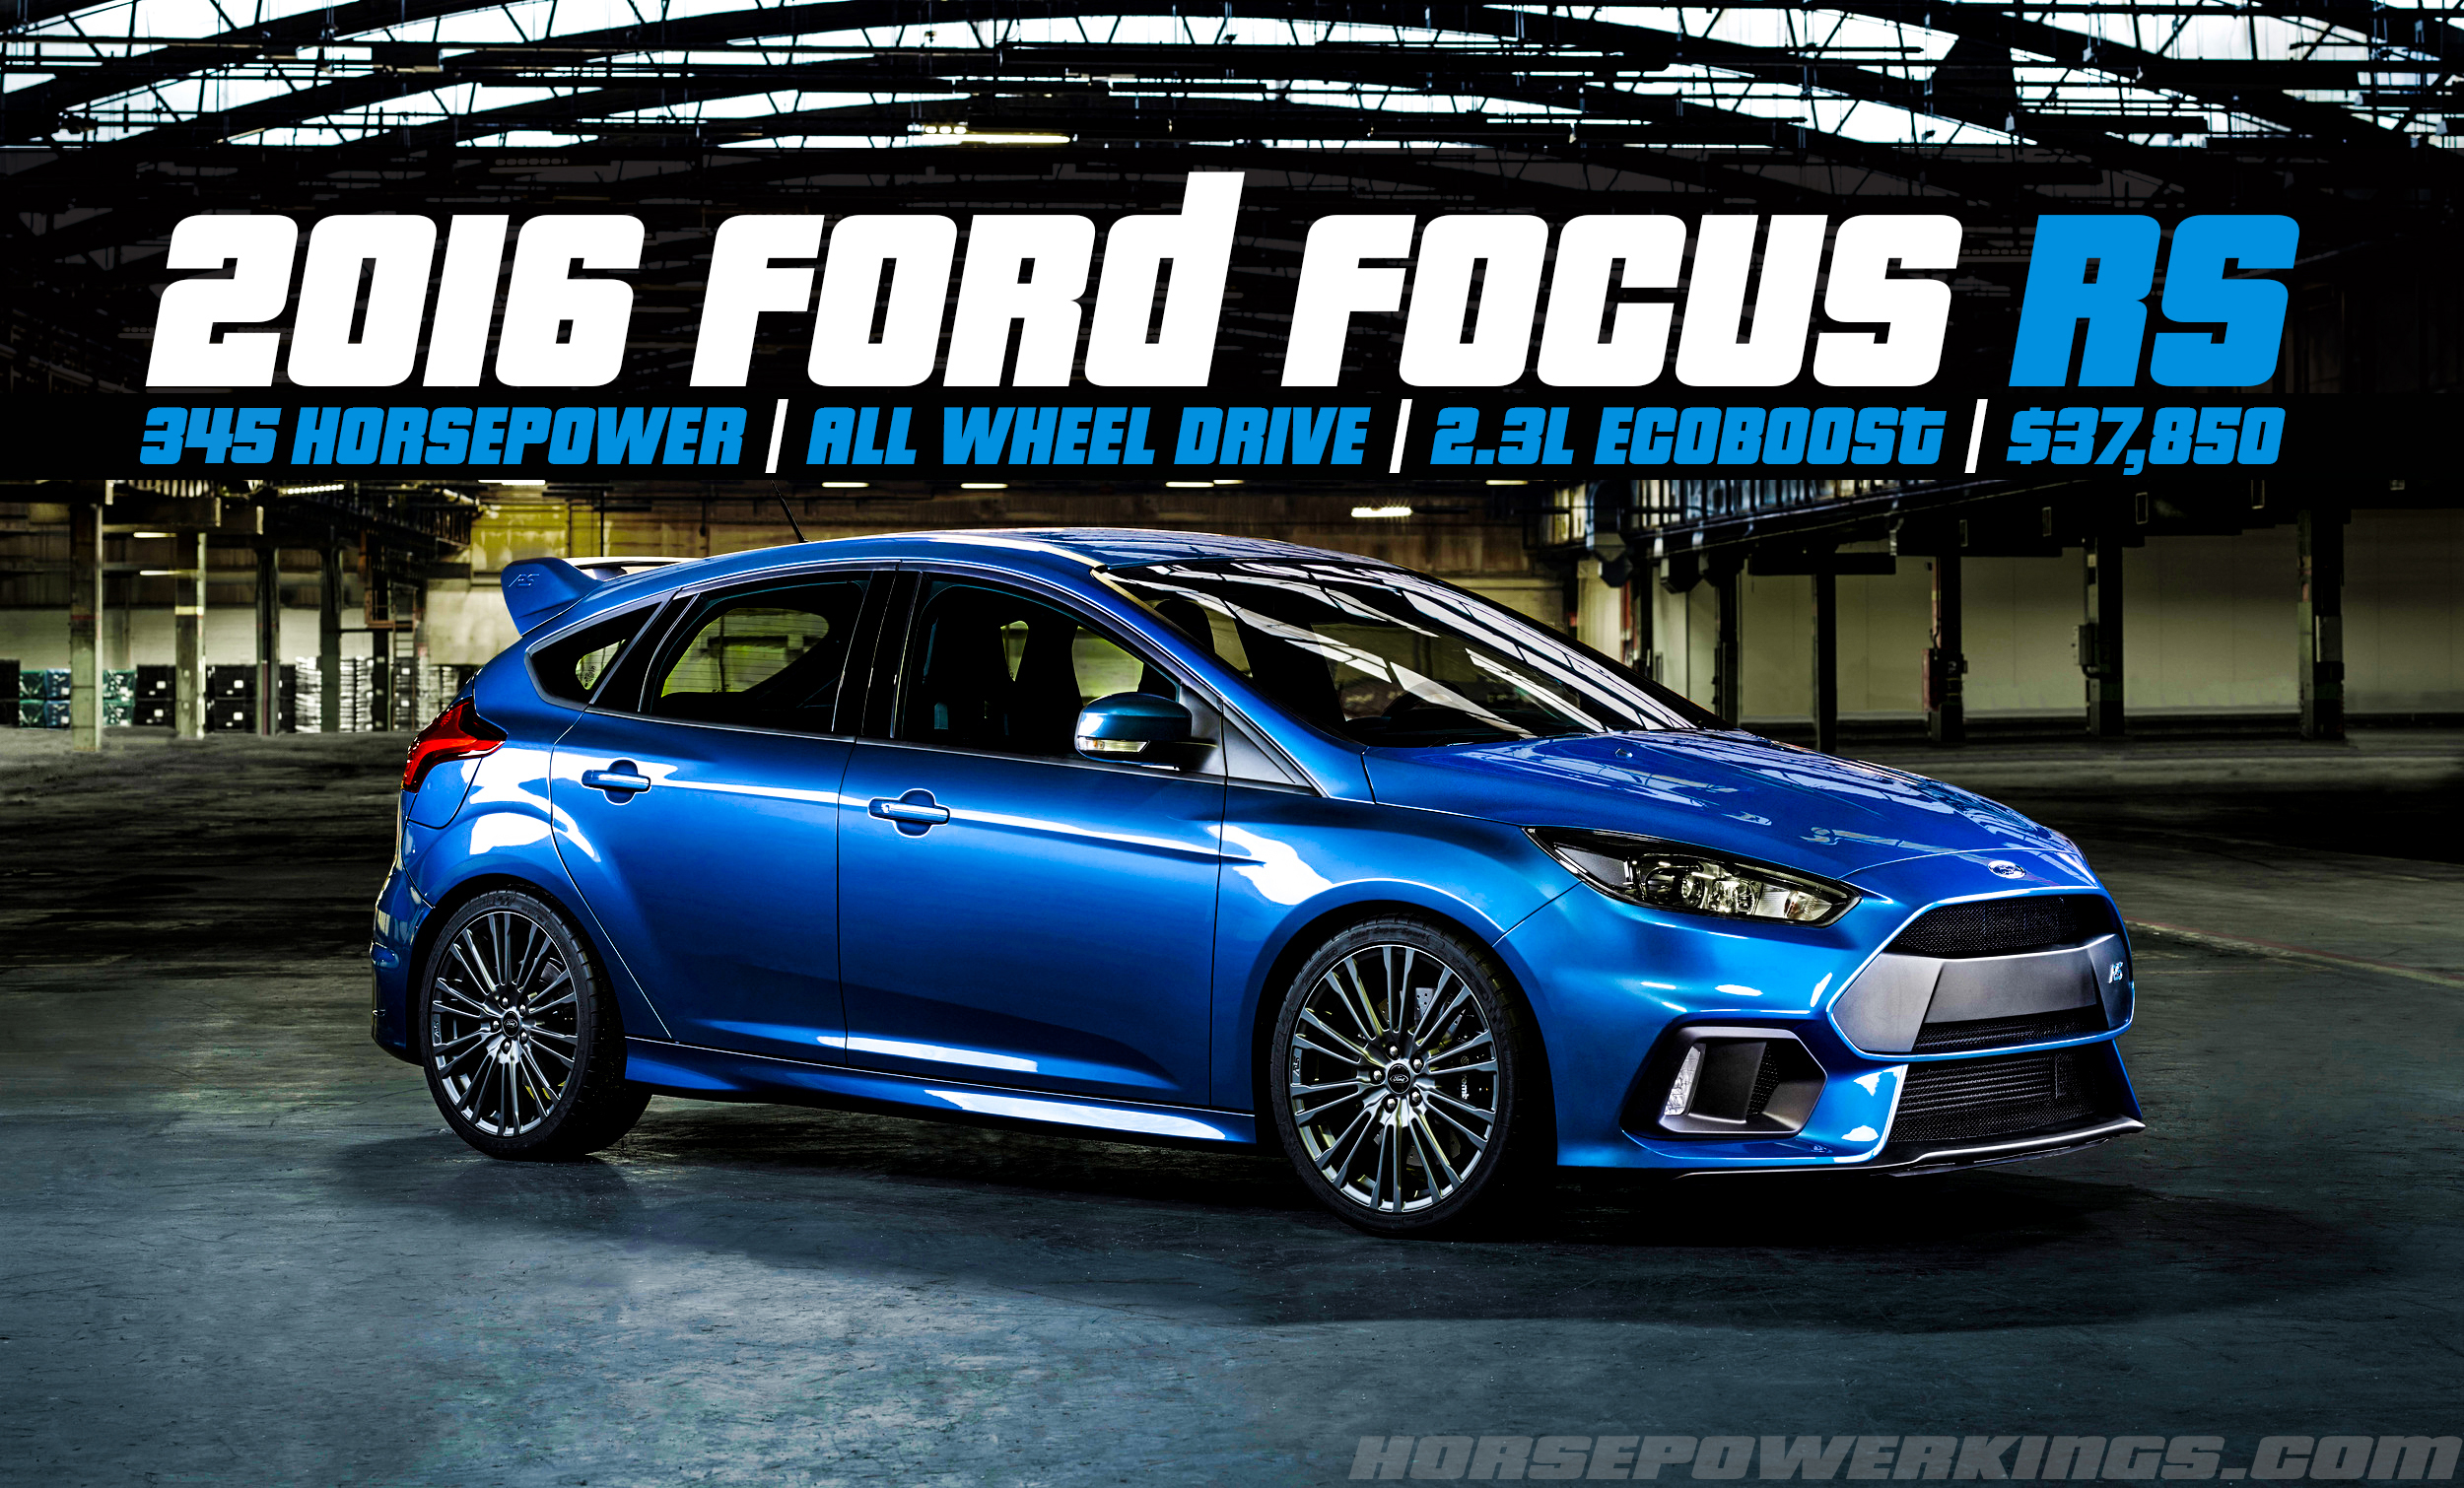 Update 2016 ford focus rs revealed 350 hp 23l ecoboost and awd w update 2016 ford focus rs revealed 350 hp 23l ecoboost and awd w torque vectoring 37850 horsepowerkings fandeluxe Images